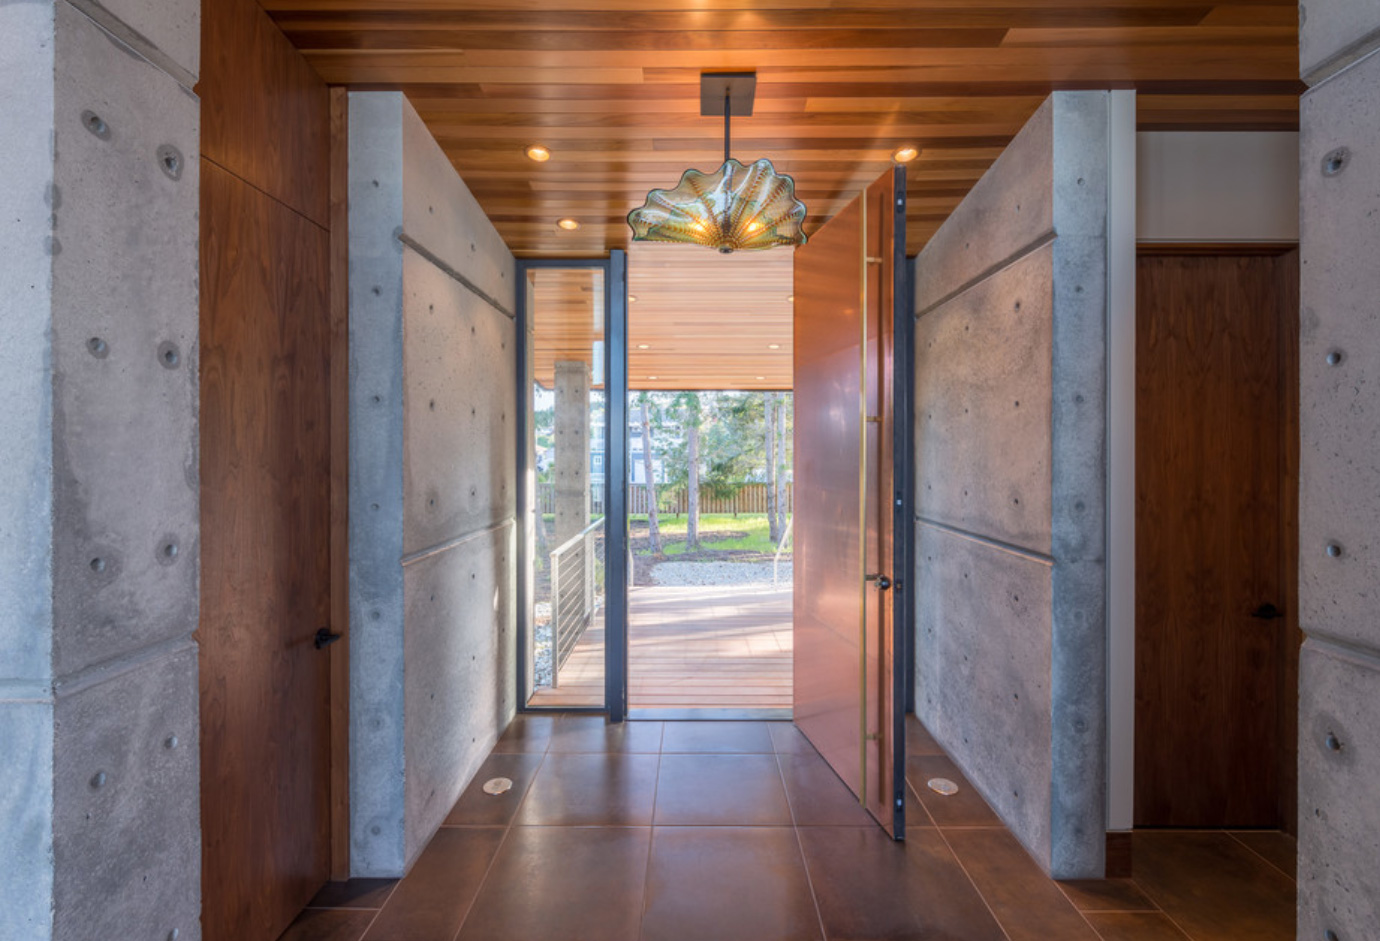 21 Stunning front door designs from architects around the world